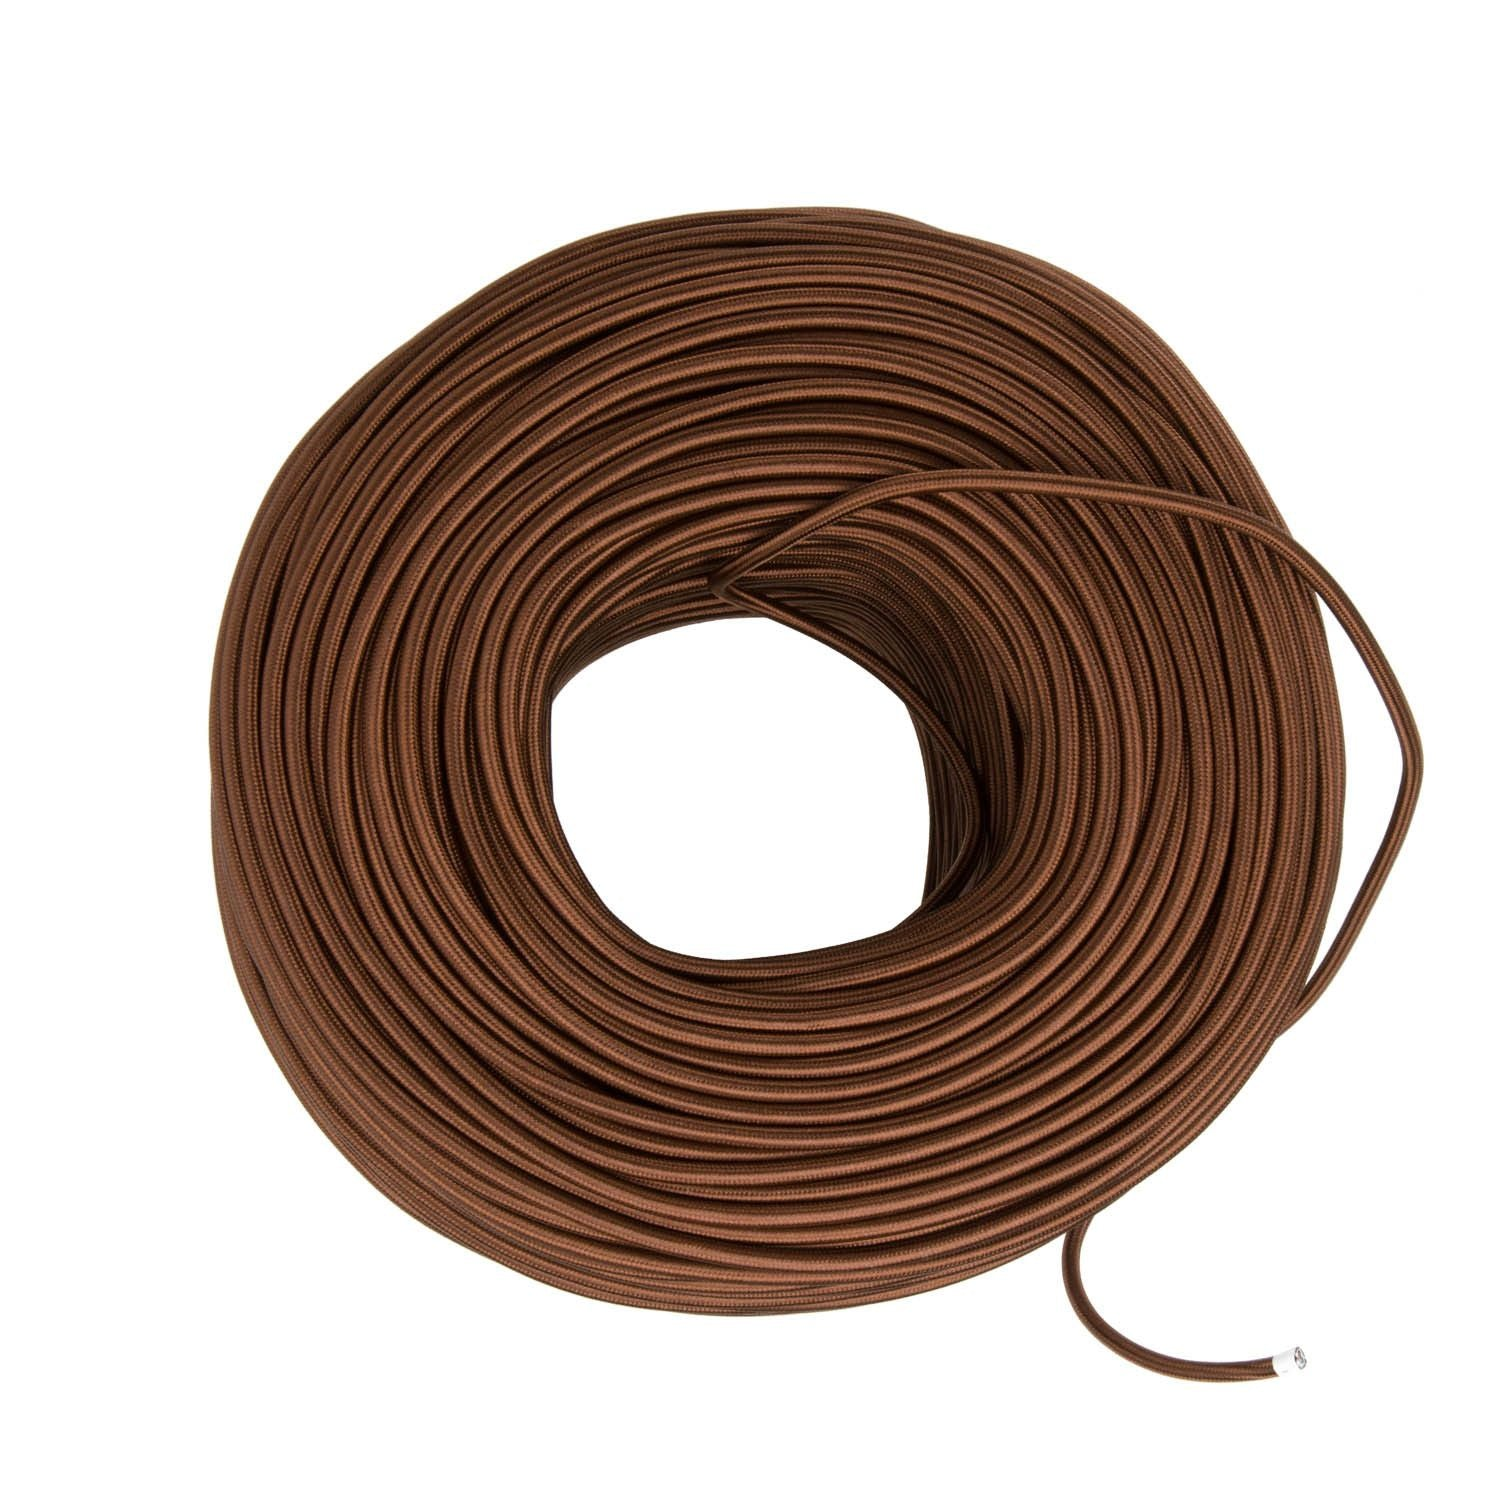 Cloth Covered Wire Bronze Color Cord Company Wiring Diy Fabric By The Foot